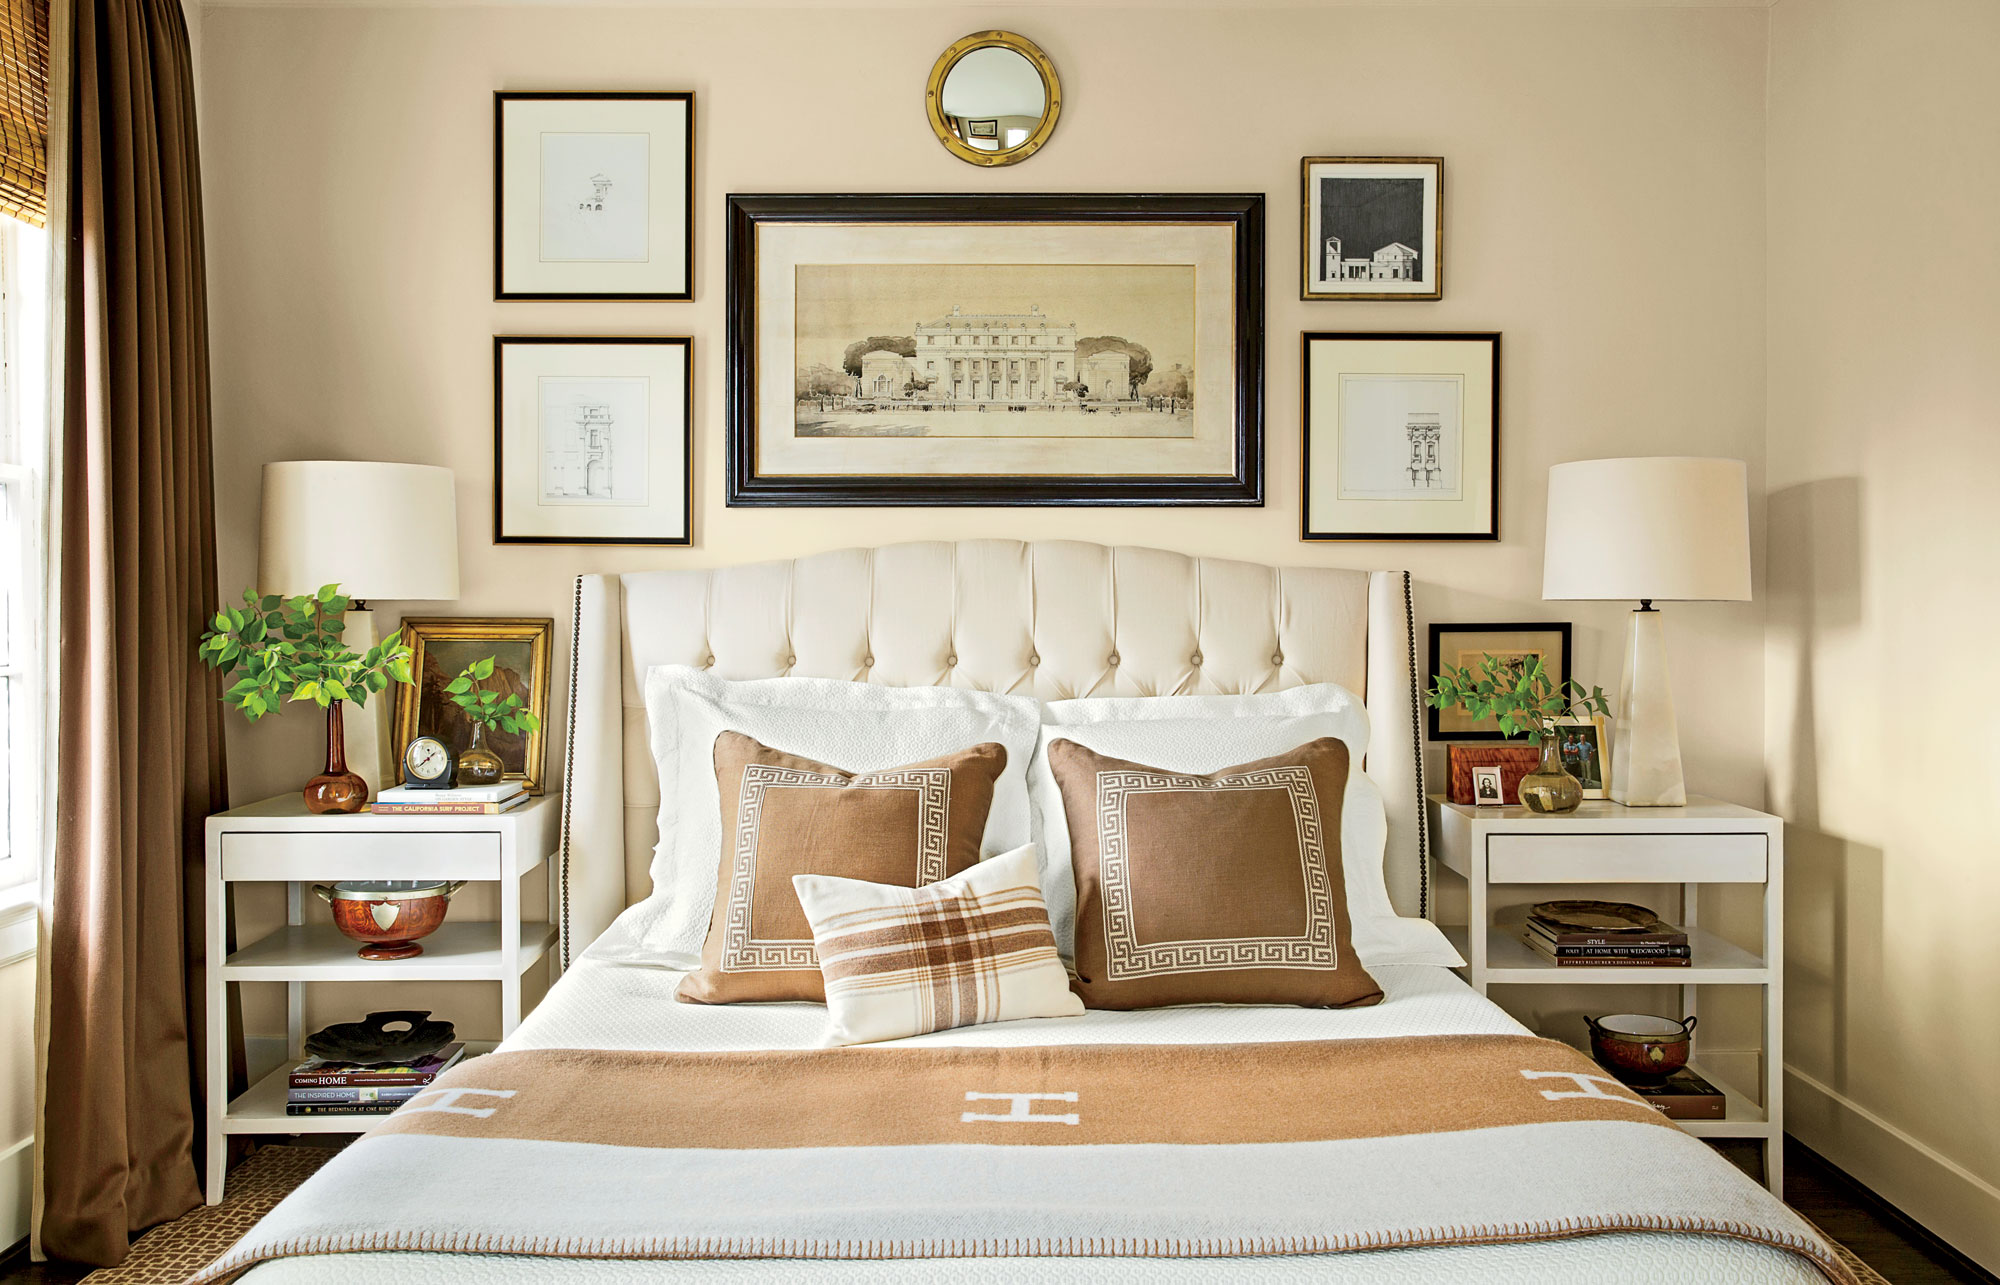 Master Bedroom Decorating Ideas Southern Living Amazing Decorating The Master Bedroom